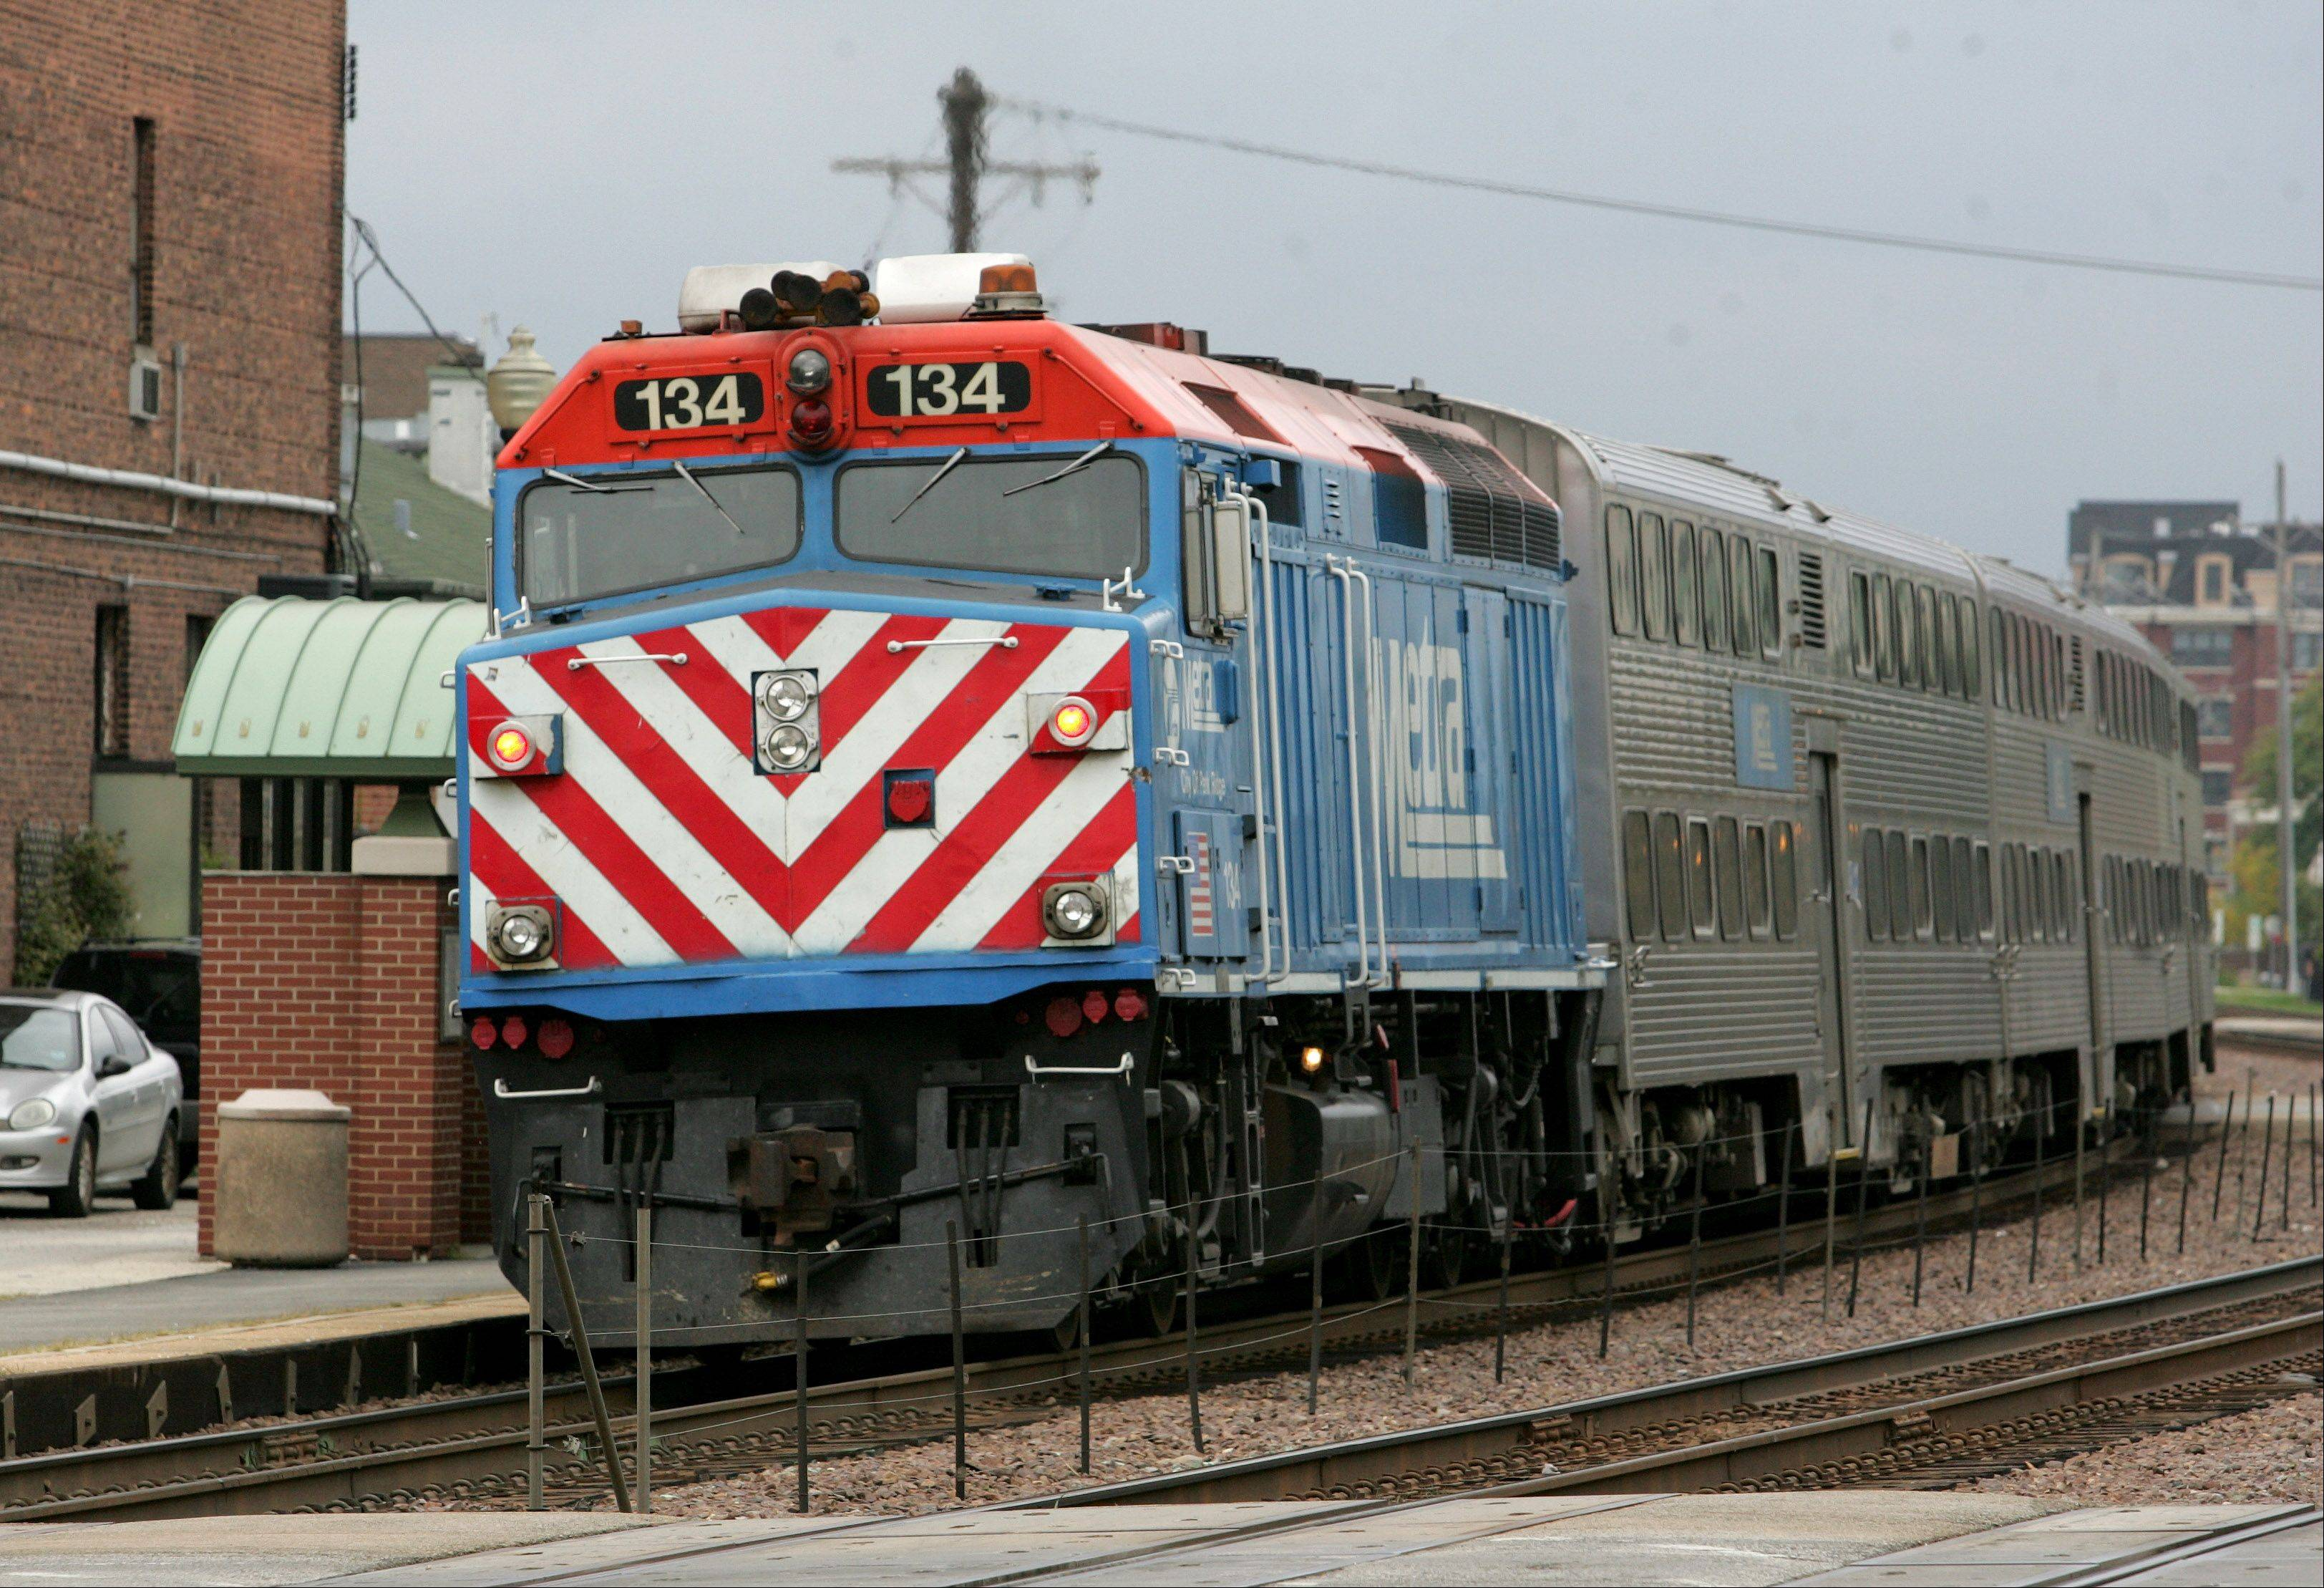 BEV HORNE/bhorne@dailyherald.com A Metra train leaves the Wheaton train station. Old rivalries between the suburbs and Chicago erupted Friday as Regional Transportation Authority leaders feuded over who should get $6 million � Pace, Metra or the CTA.